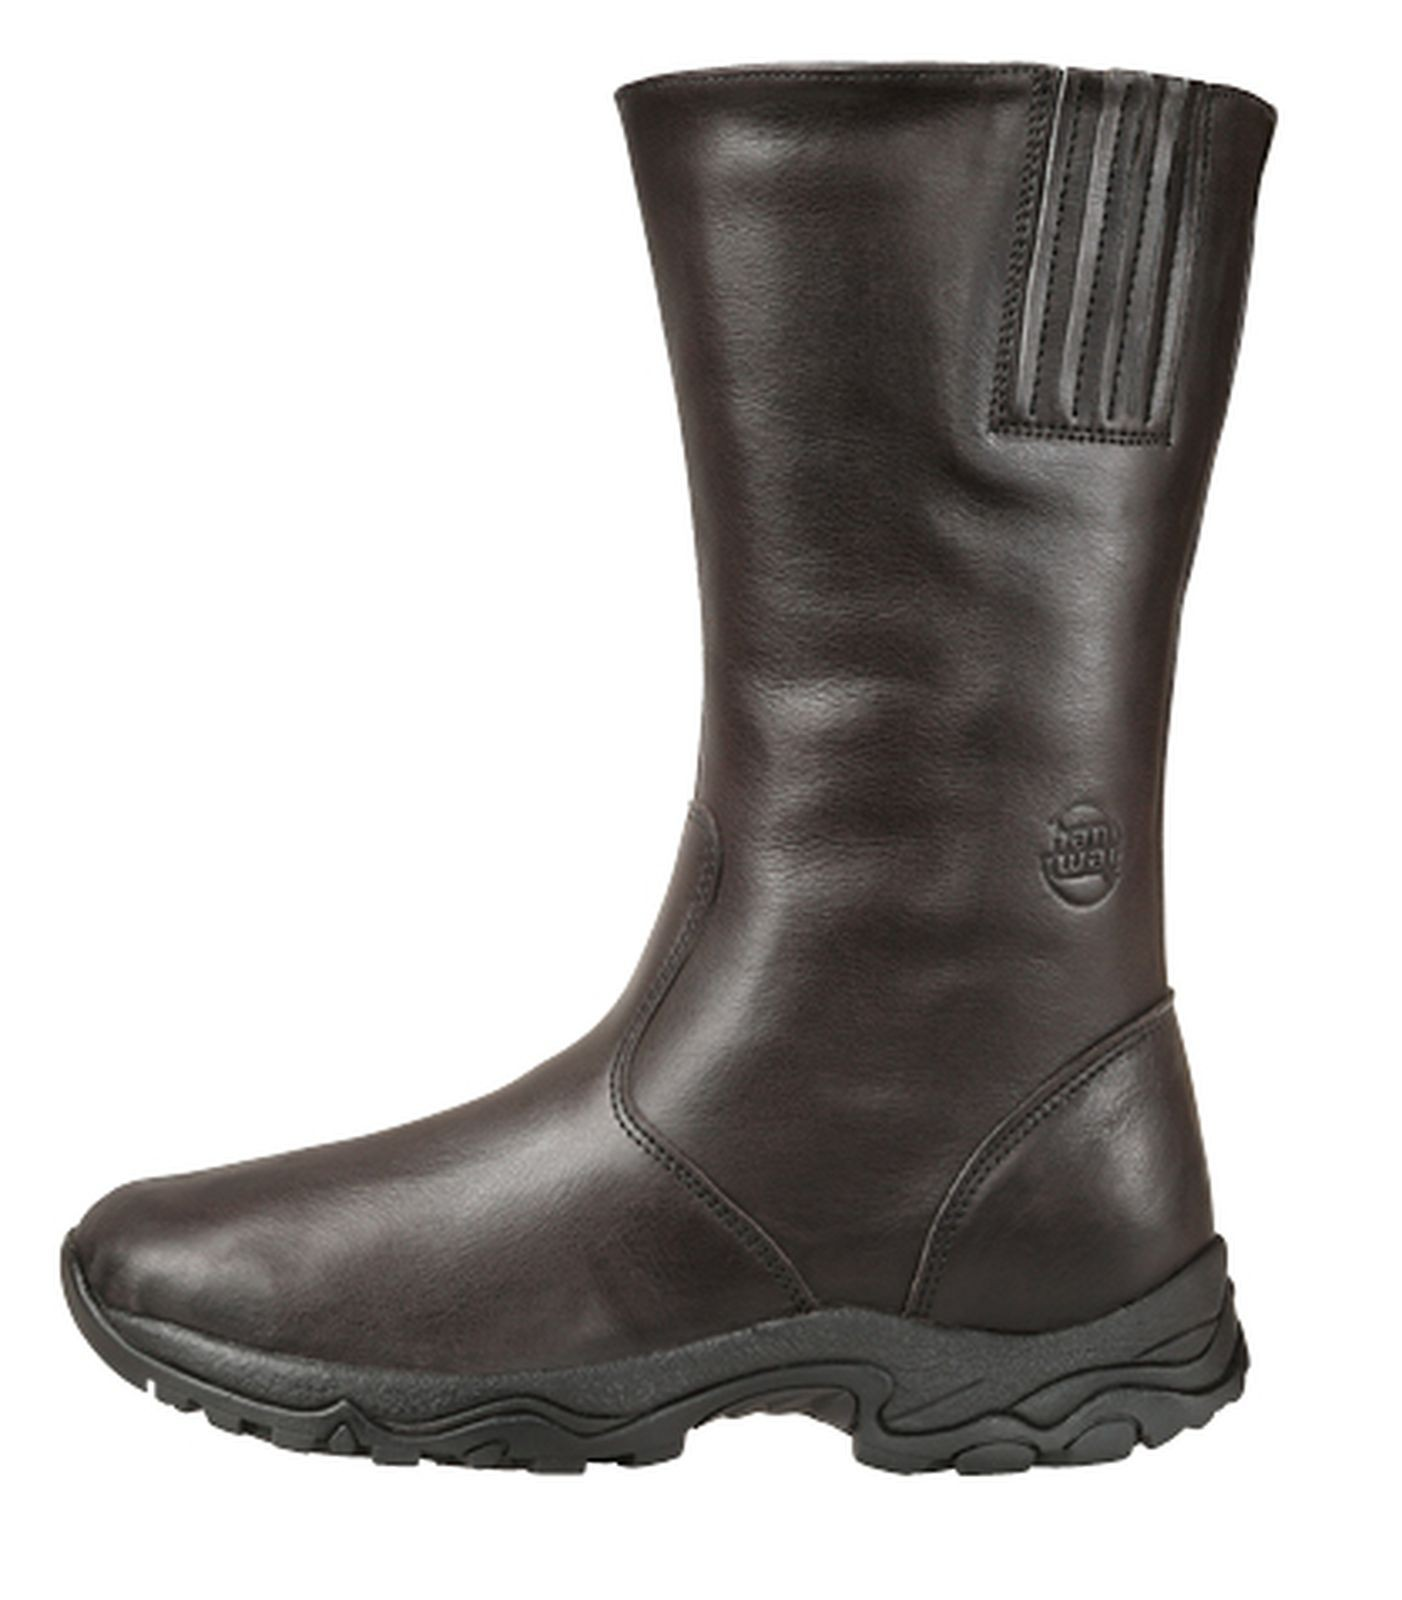 HANWAG Winterstiefel Tannäs Classic Lady Leder Gr.7,5 graphite